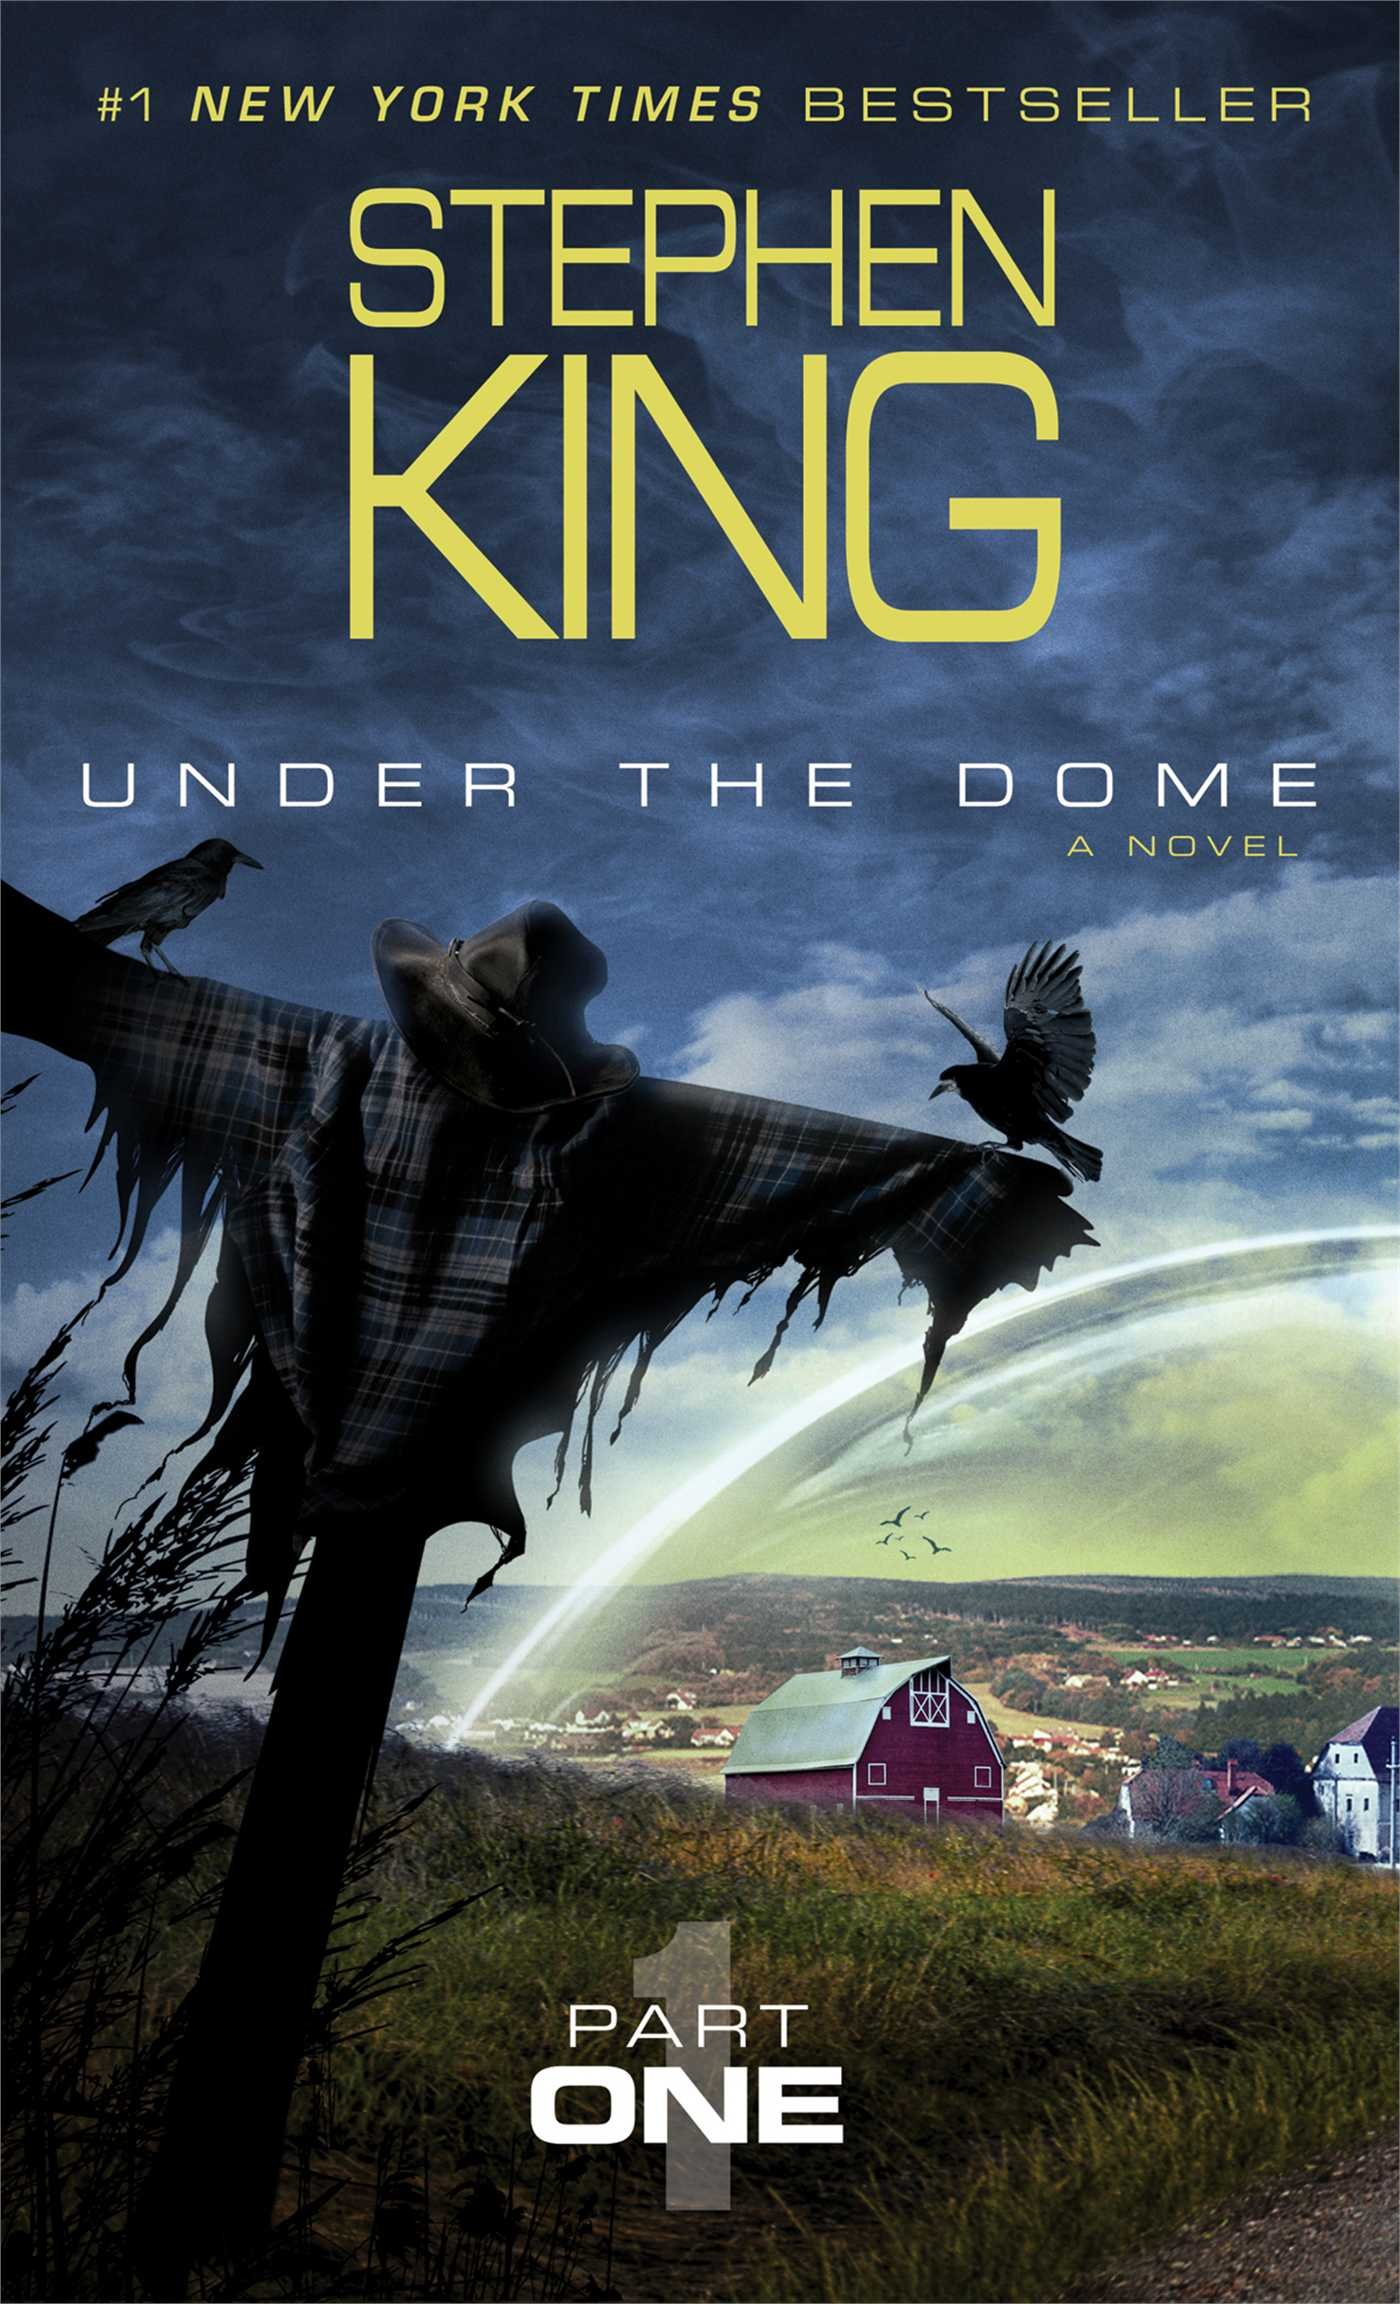 under the dome novel review